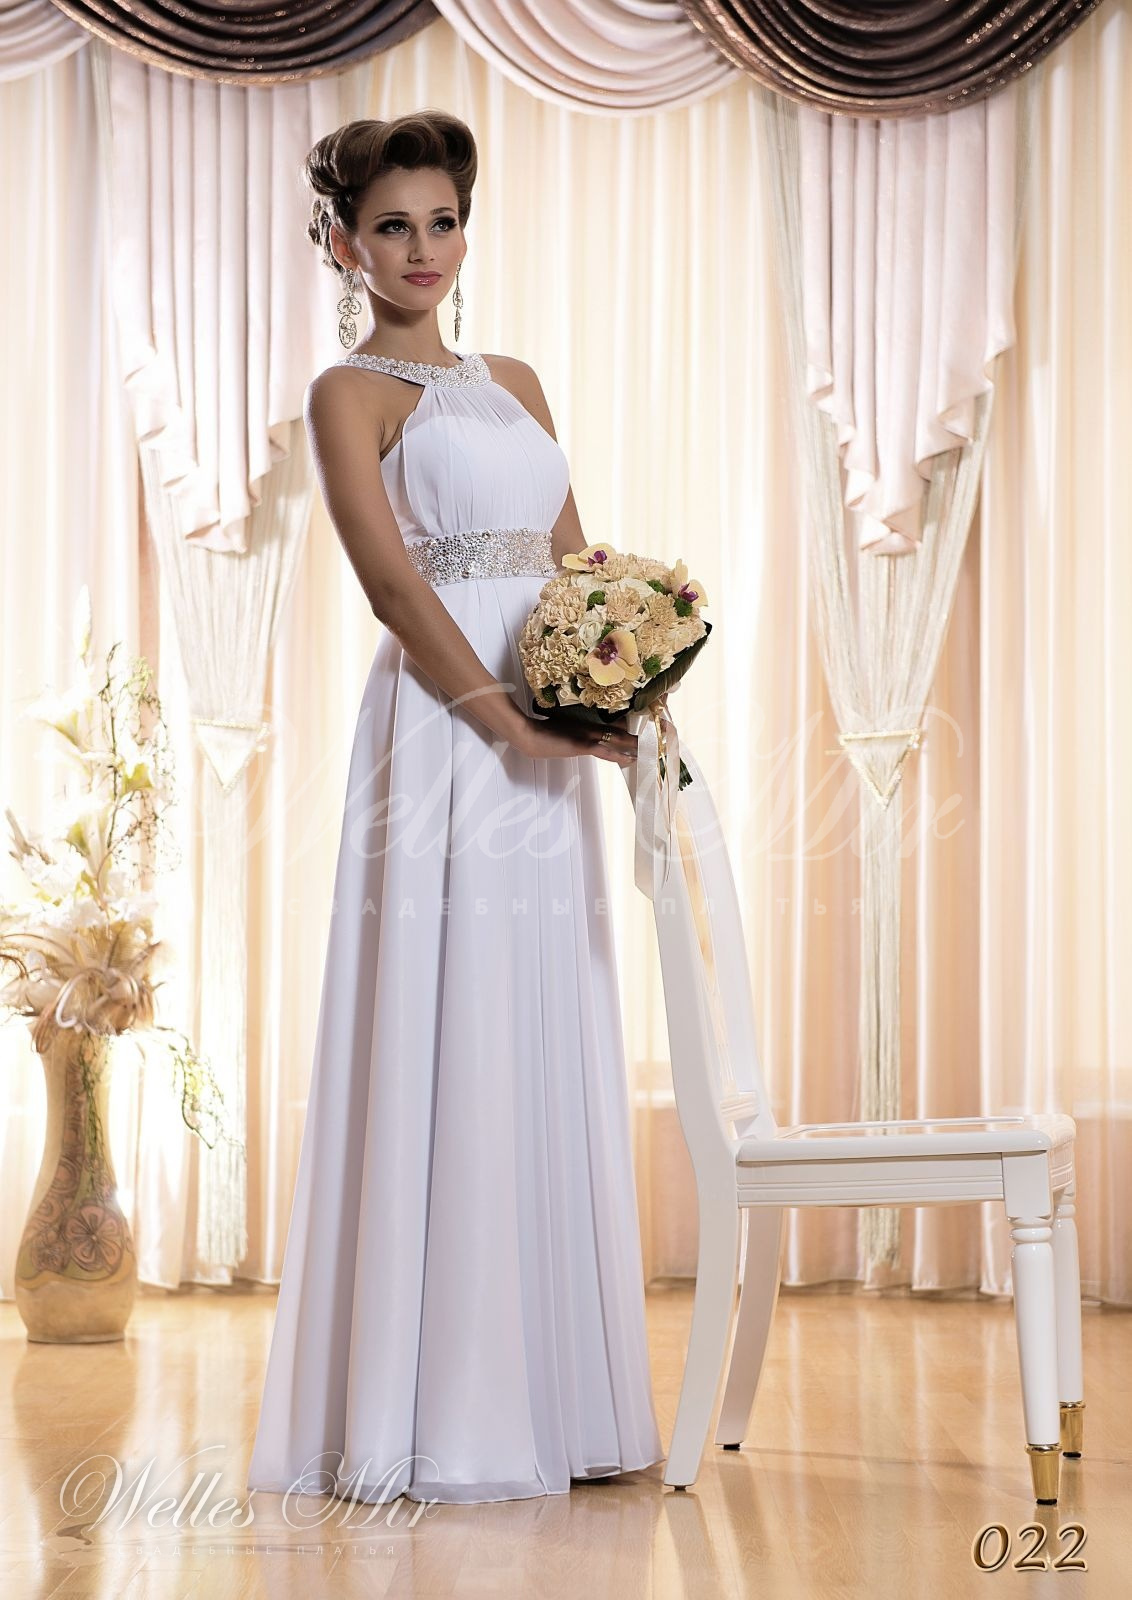 Wedding dresses 022